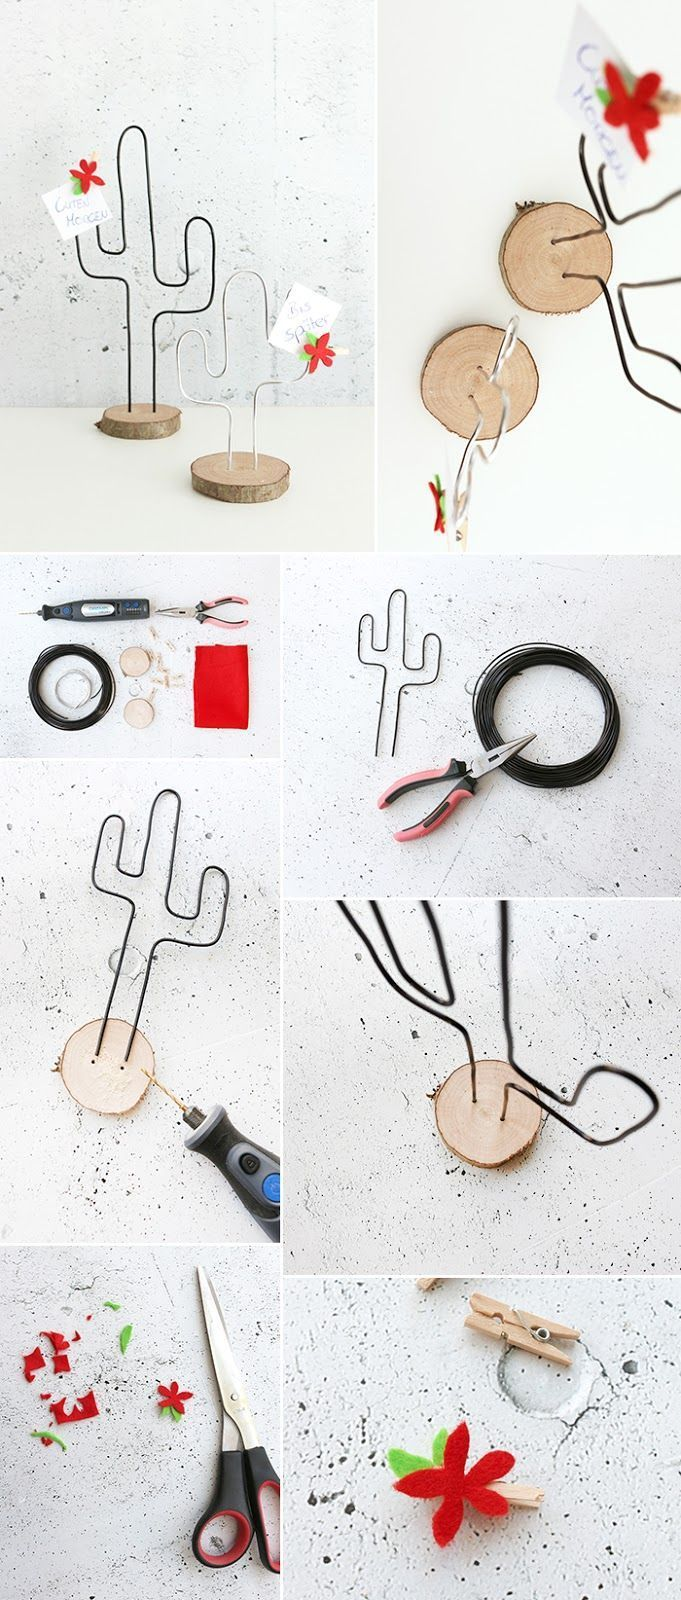 10 creative DIY garden markers craft  10 creative DIY garden markers craft #garden #handwerk #kreative #marker The post 10 creative DIY garden markers craft appeared first on Woman Casual.